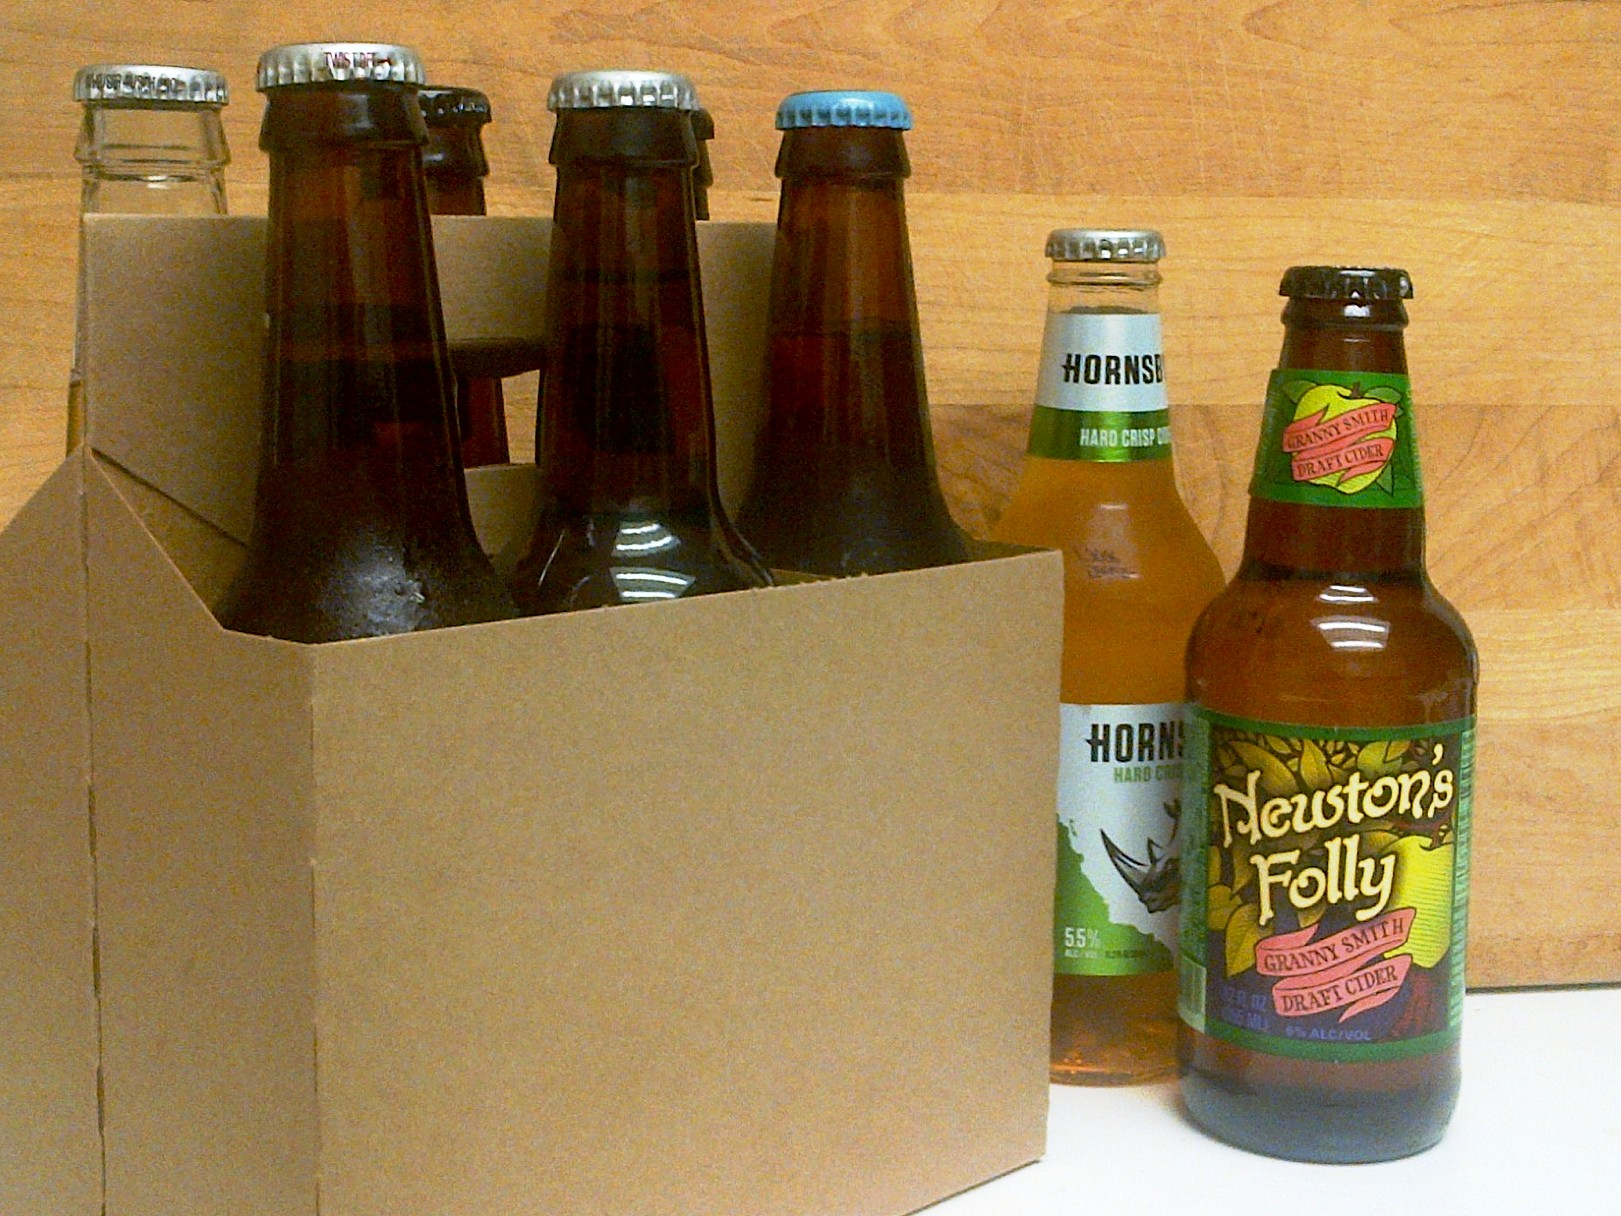 trader joes newtons hornsby folly gluten free beer cider